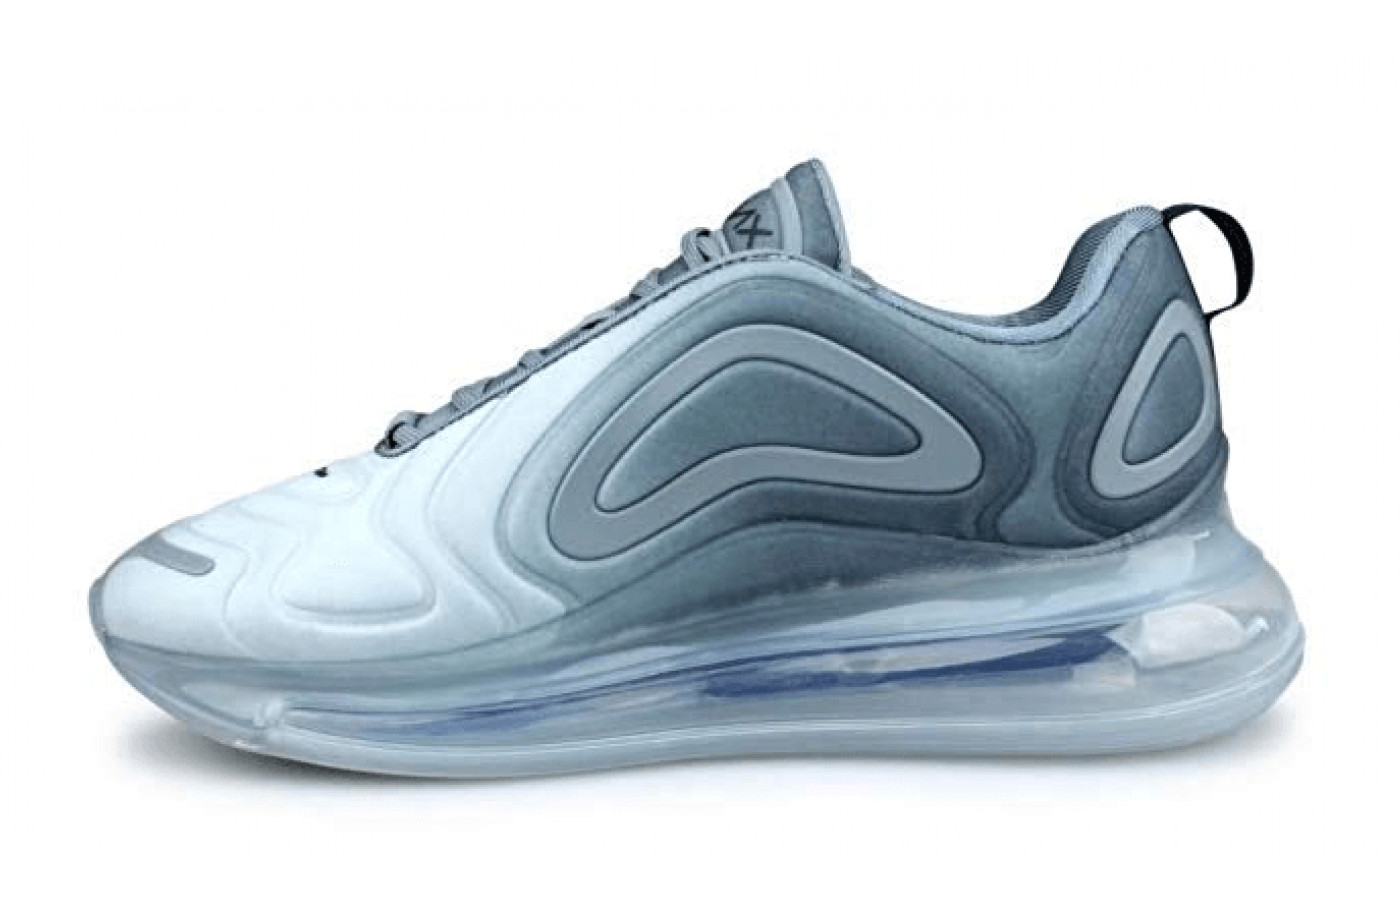 The Air Max 720 offers an incredibly responsive wear.